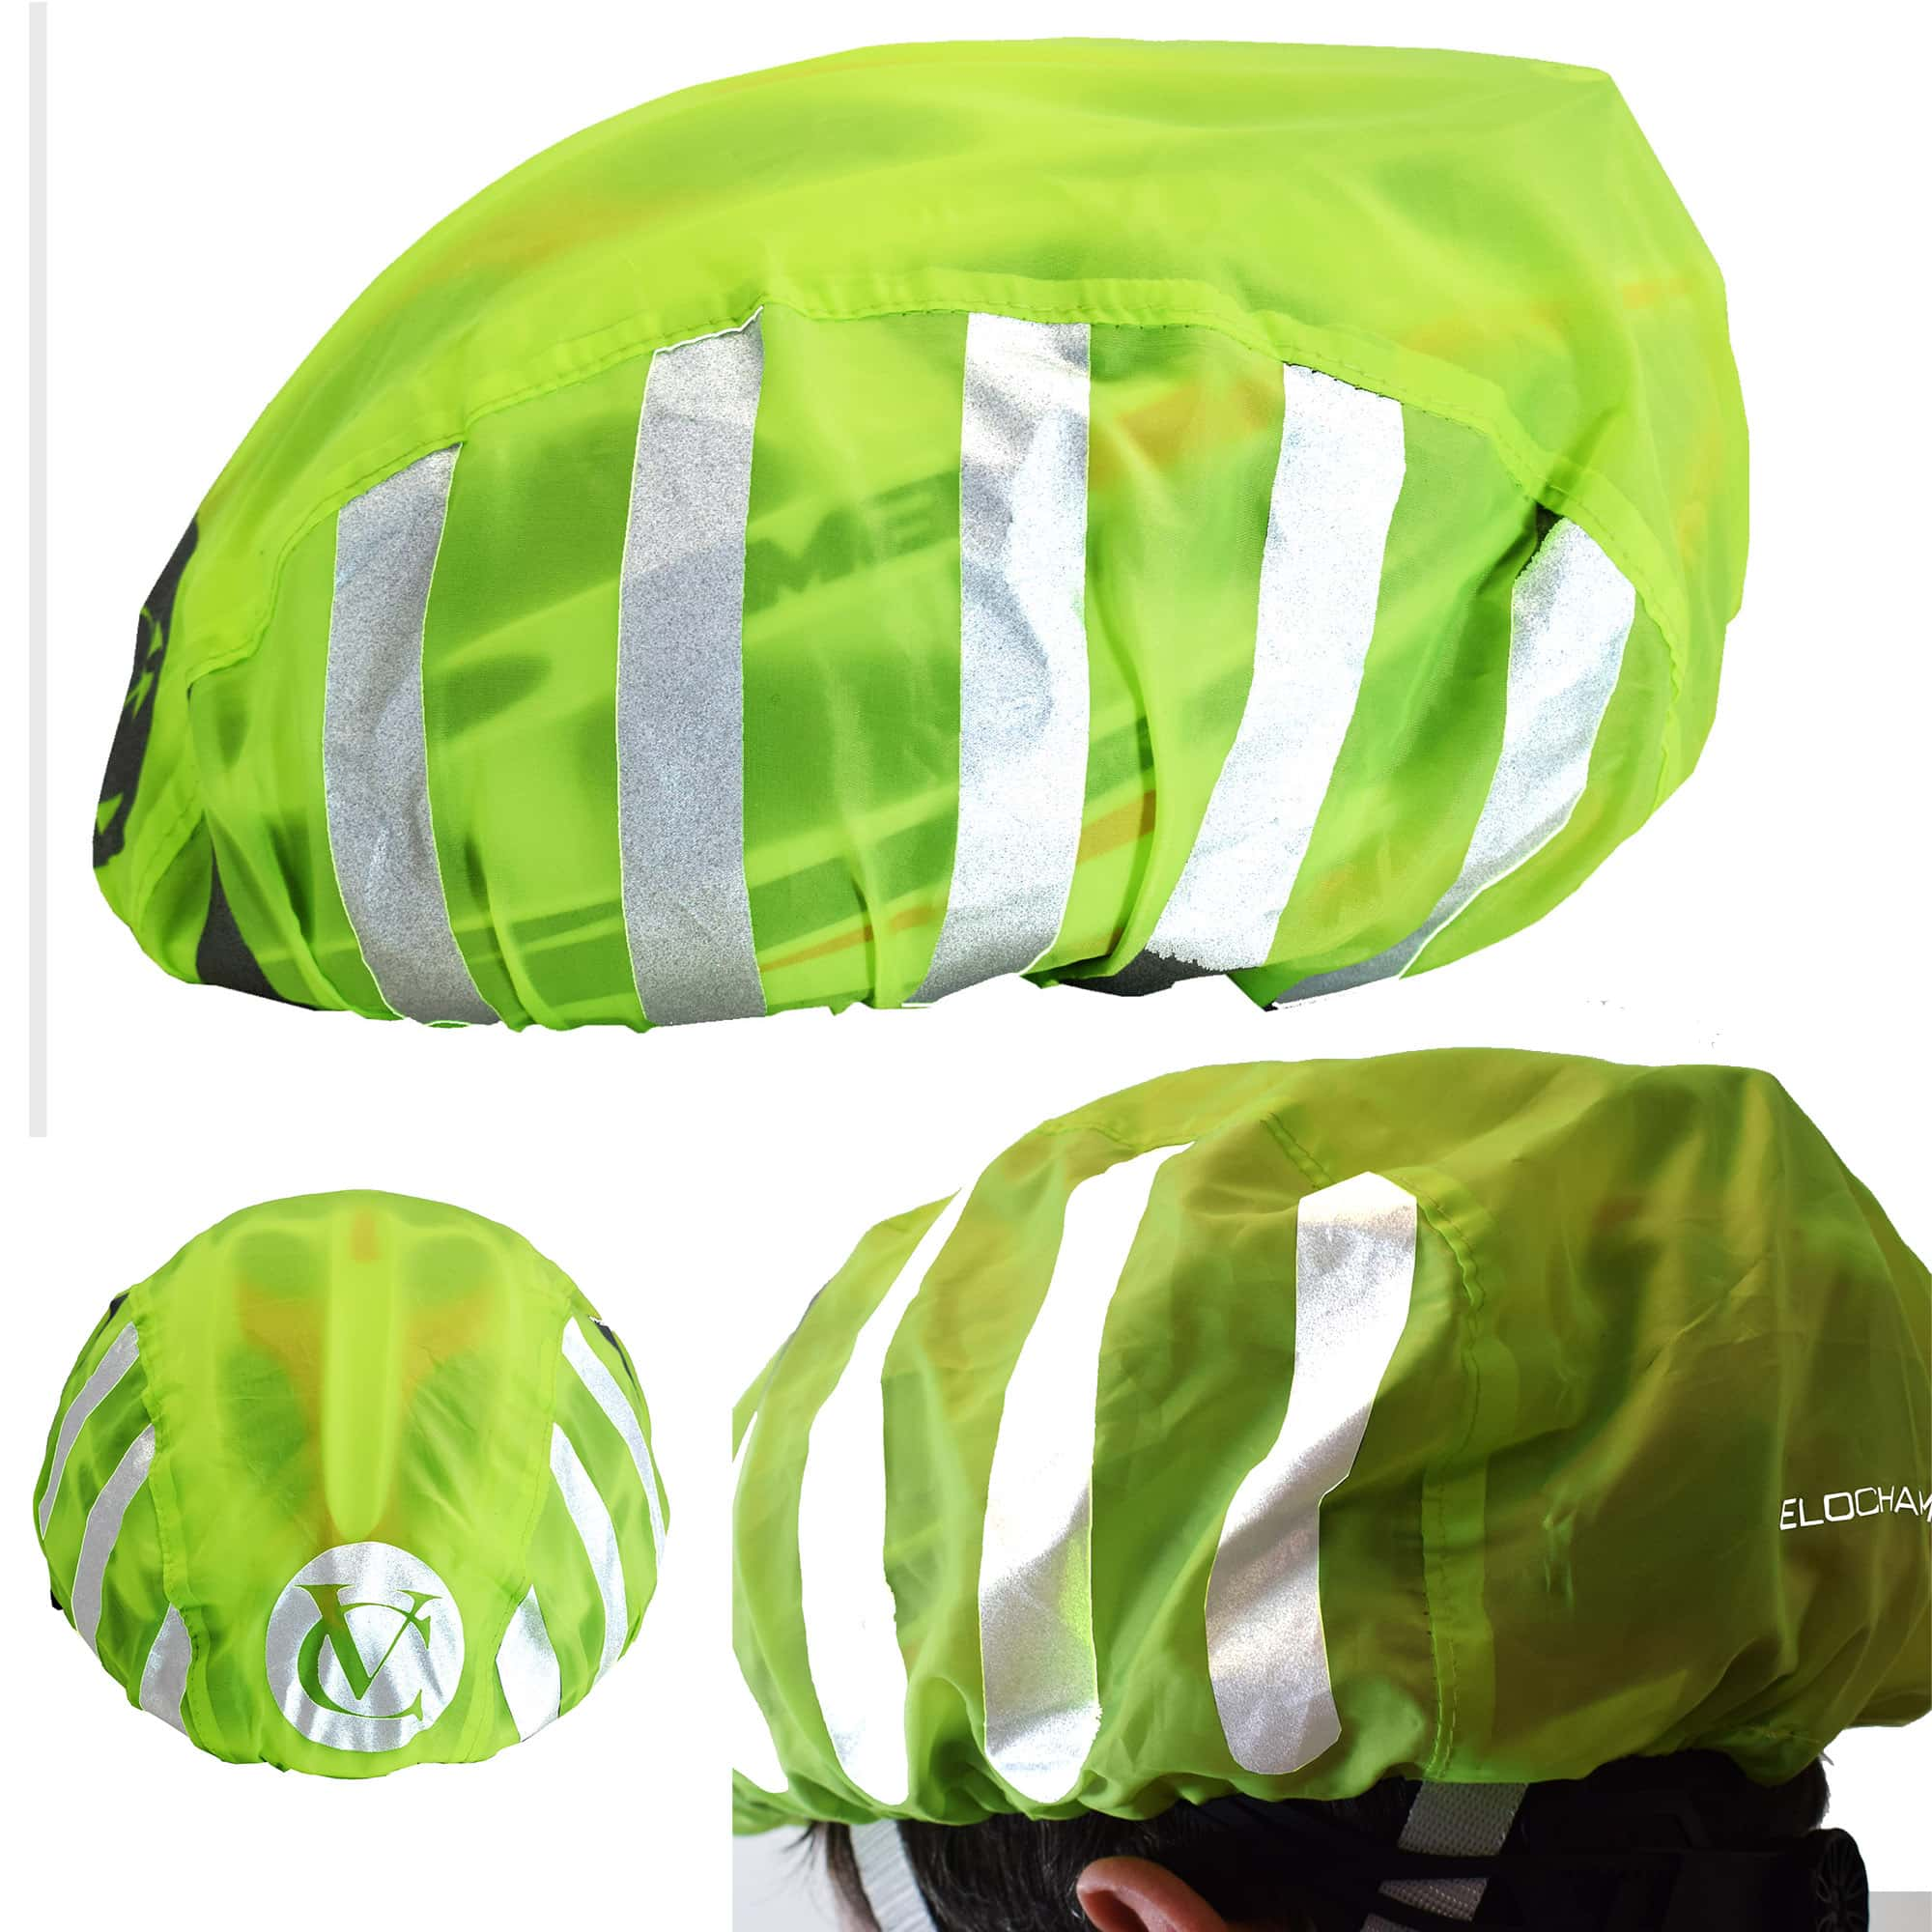 VELOCHAMPION Fluorescent Helmet Cover - Be Seen In Low Light Conditions